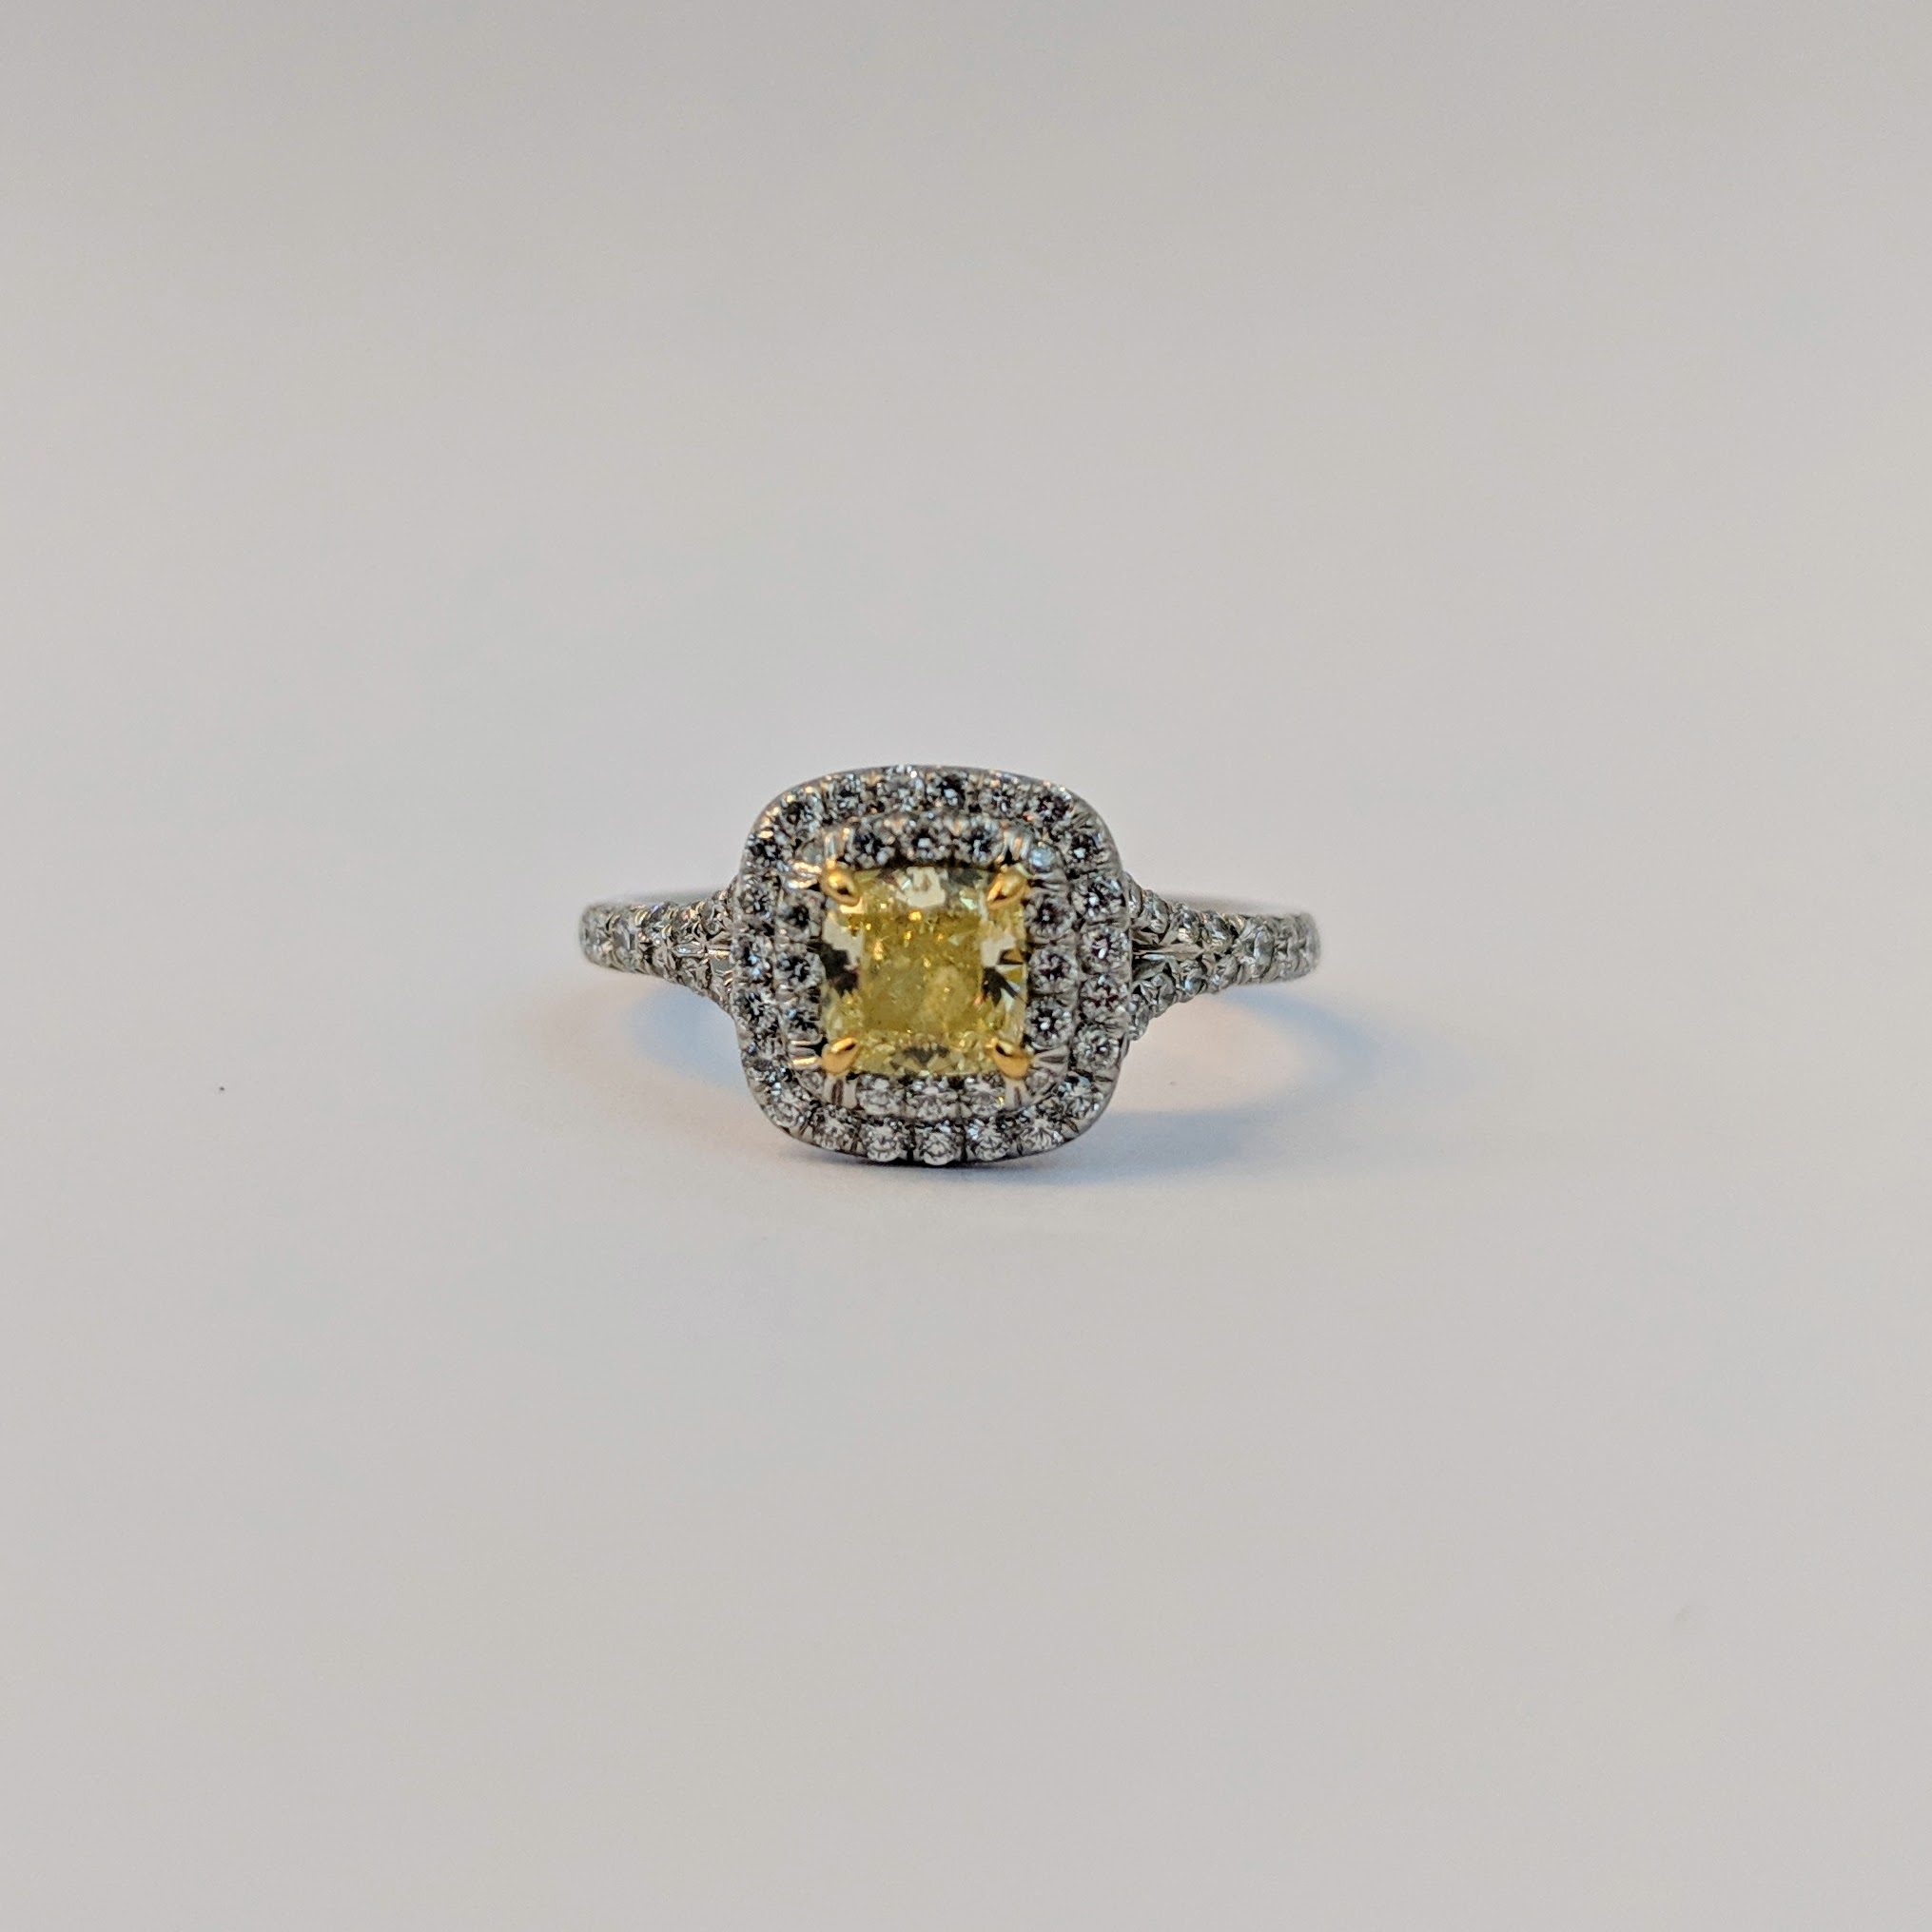 db1399368be Soleste Cushion Cut Yellow Diamond Halo Engagement Ring in Platinum. Tiffany    Co. Tiffany   Co. Tiffany   Co.